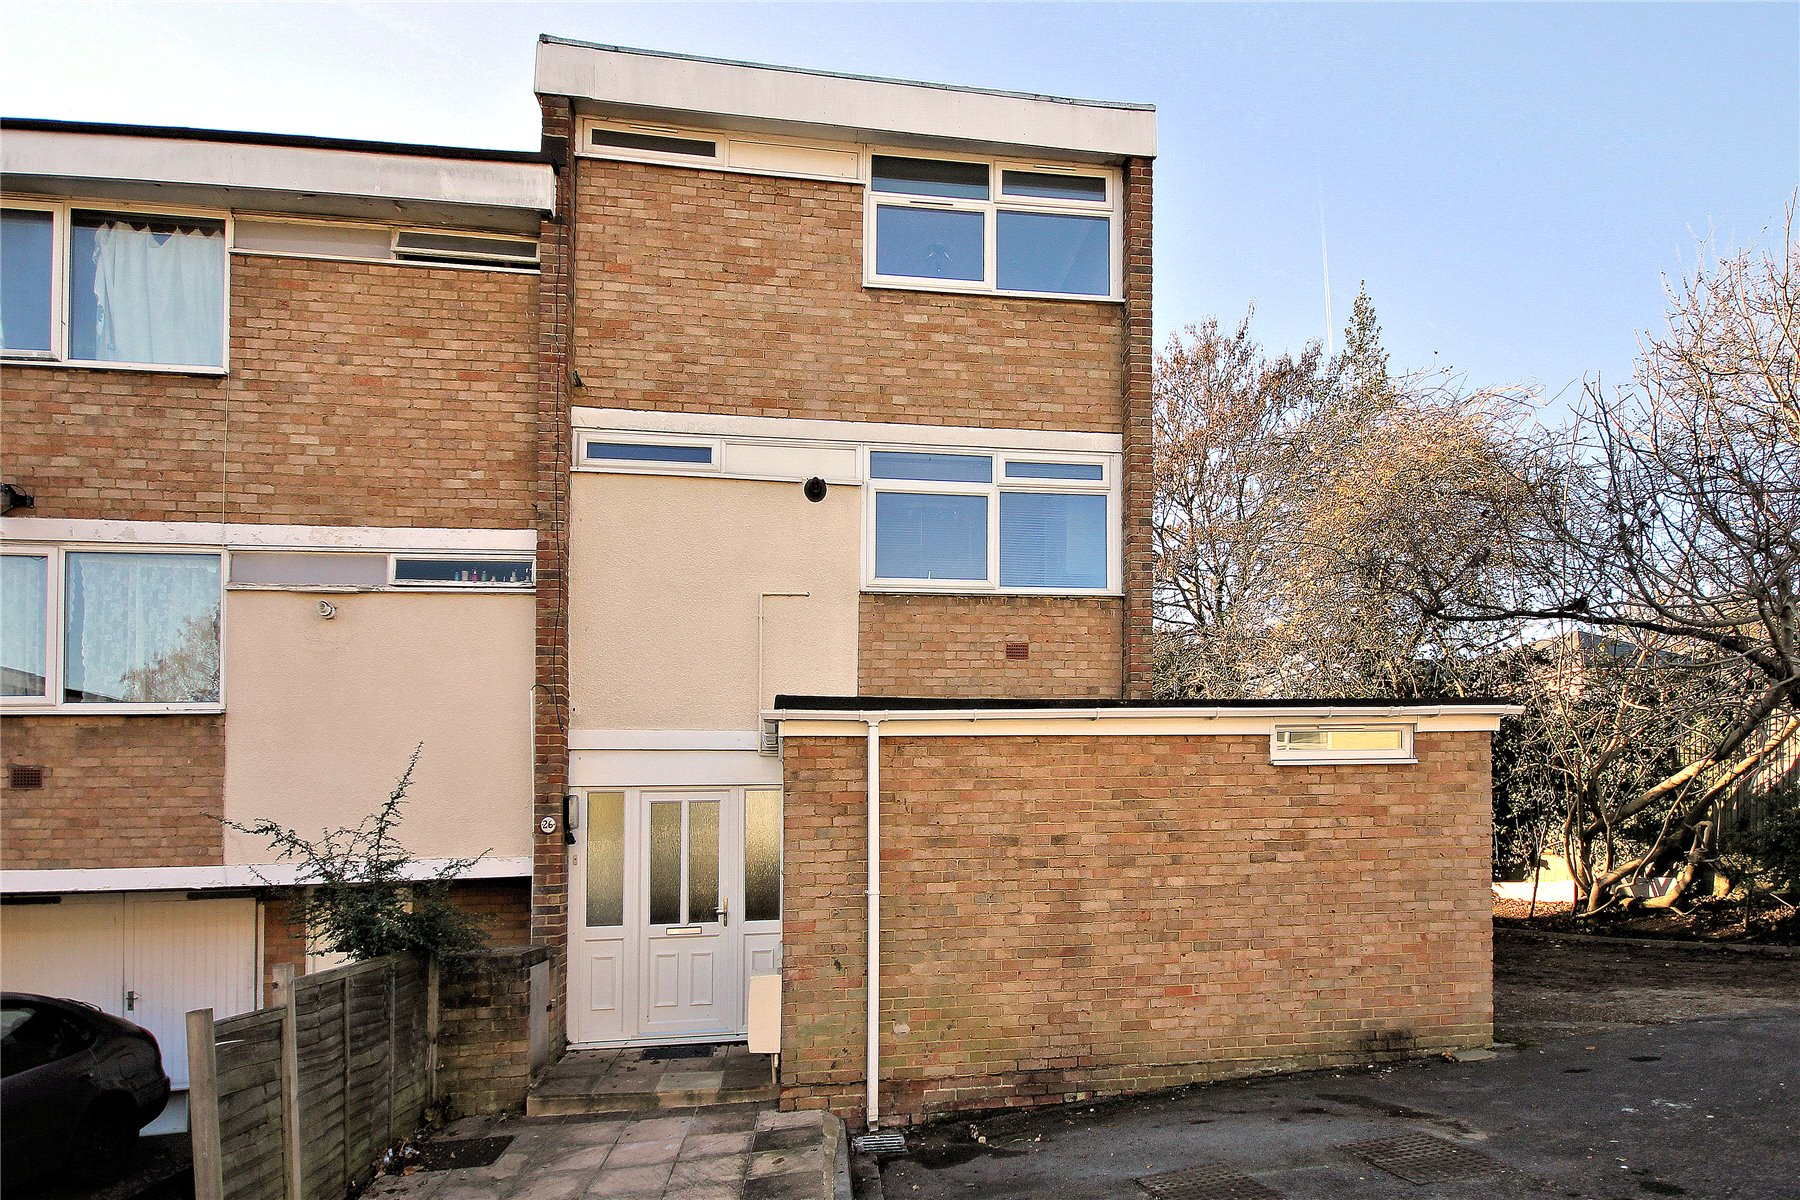 4 Bedrooms End Of Terrace House for sale in Moorholme, Woking, Surrey, GU22